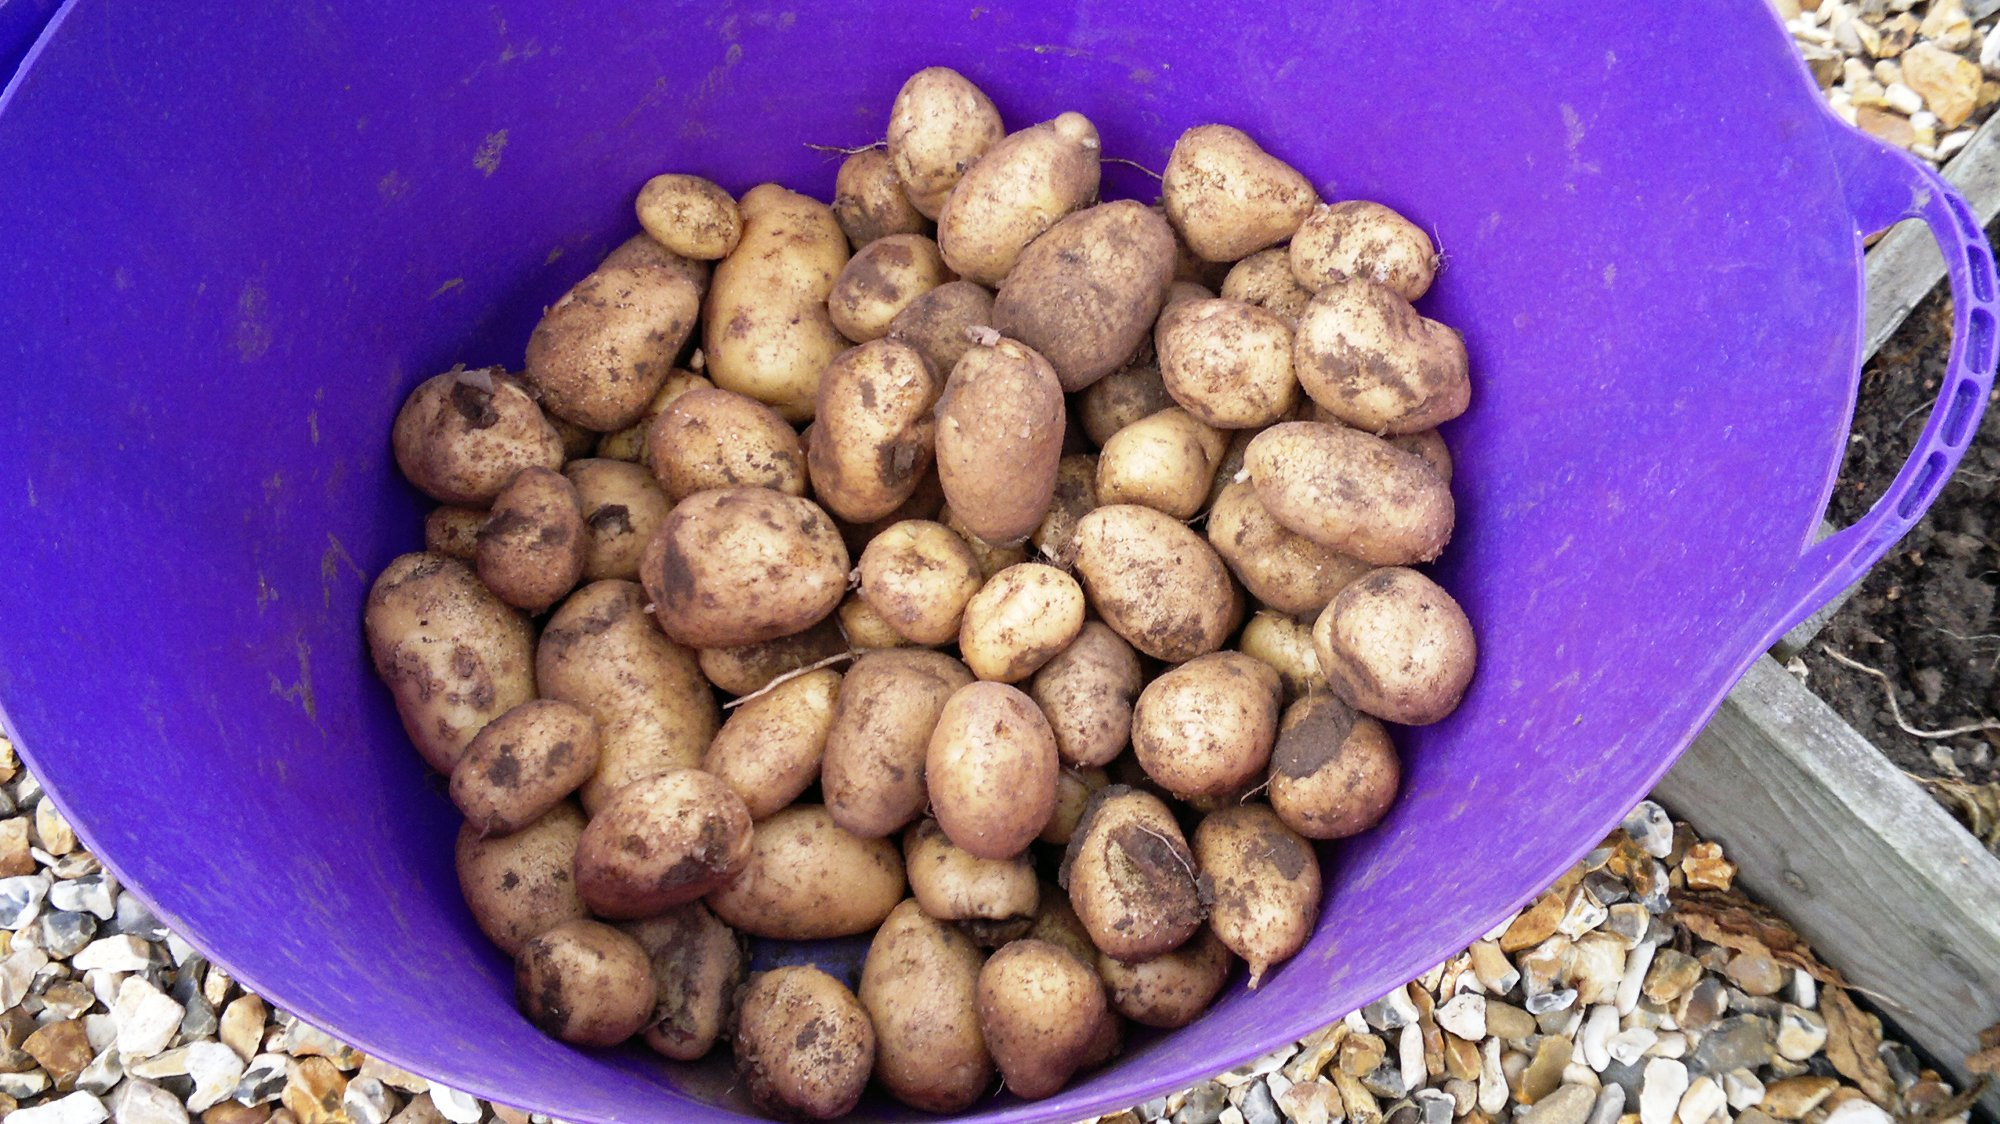 A collection of medium sized tubers from the second potato bed